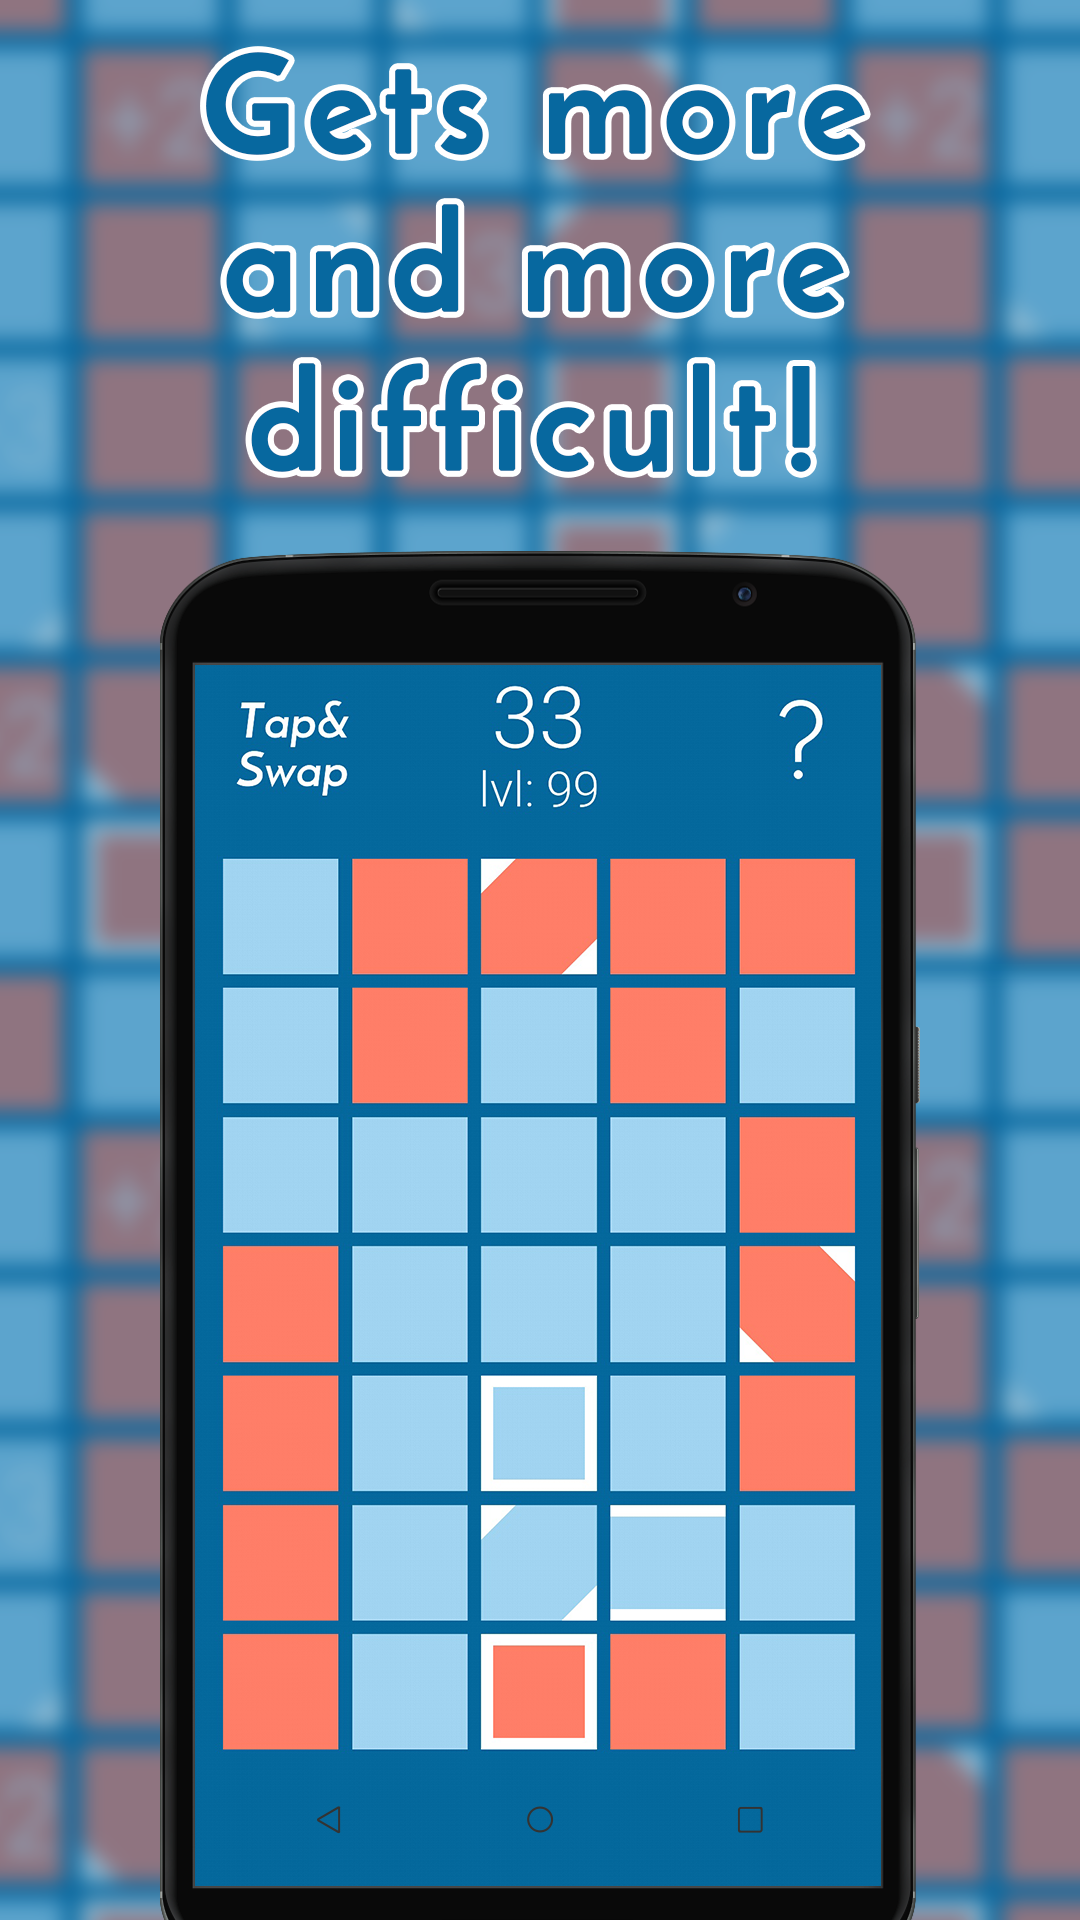 Amazon.com: Tap & Swap - puzzle game: Appstore for Android